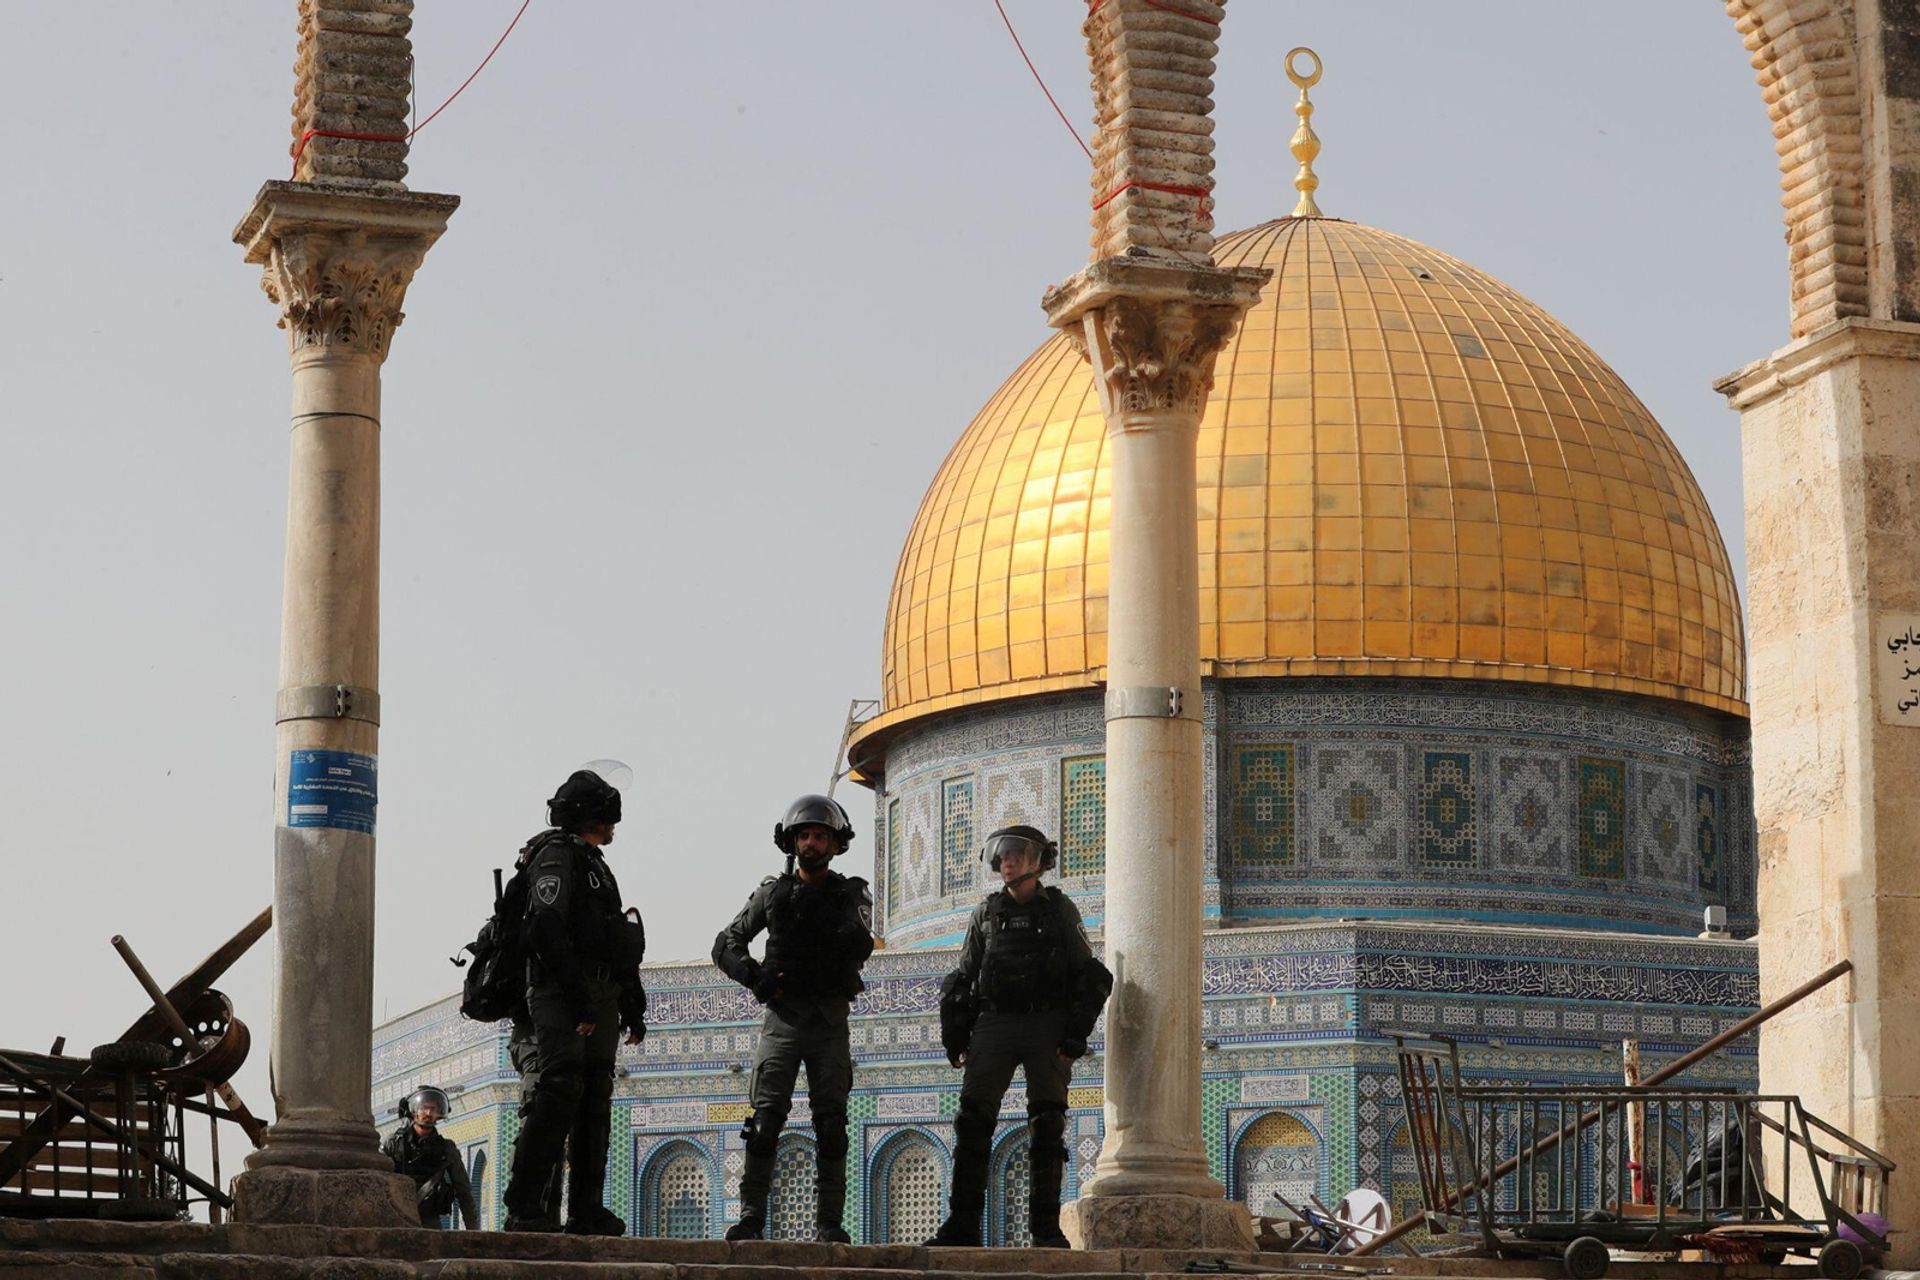 Israeli police stand in front of the Dome of the Rock during clashes with Palestinians at the compound that houses Al-Aqsa Mosque, known to Muslims as Noble Sanctuary and to Jews as Temple Mount, in Jerusalem's Old City © Reuters/Ammar Awad